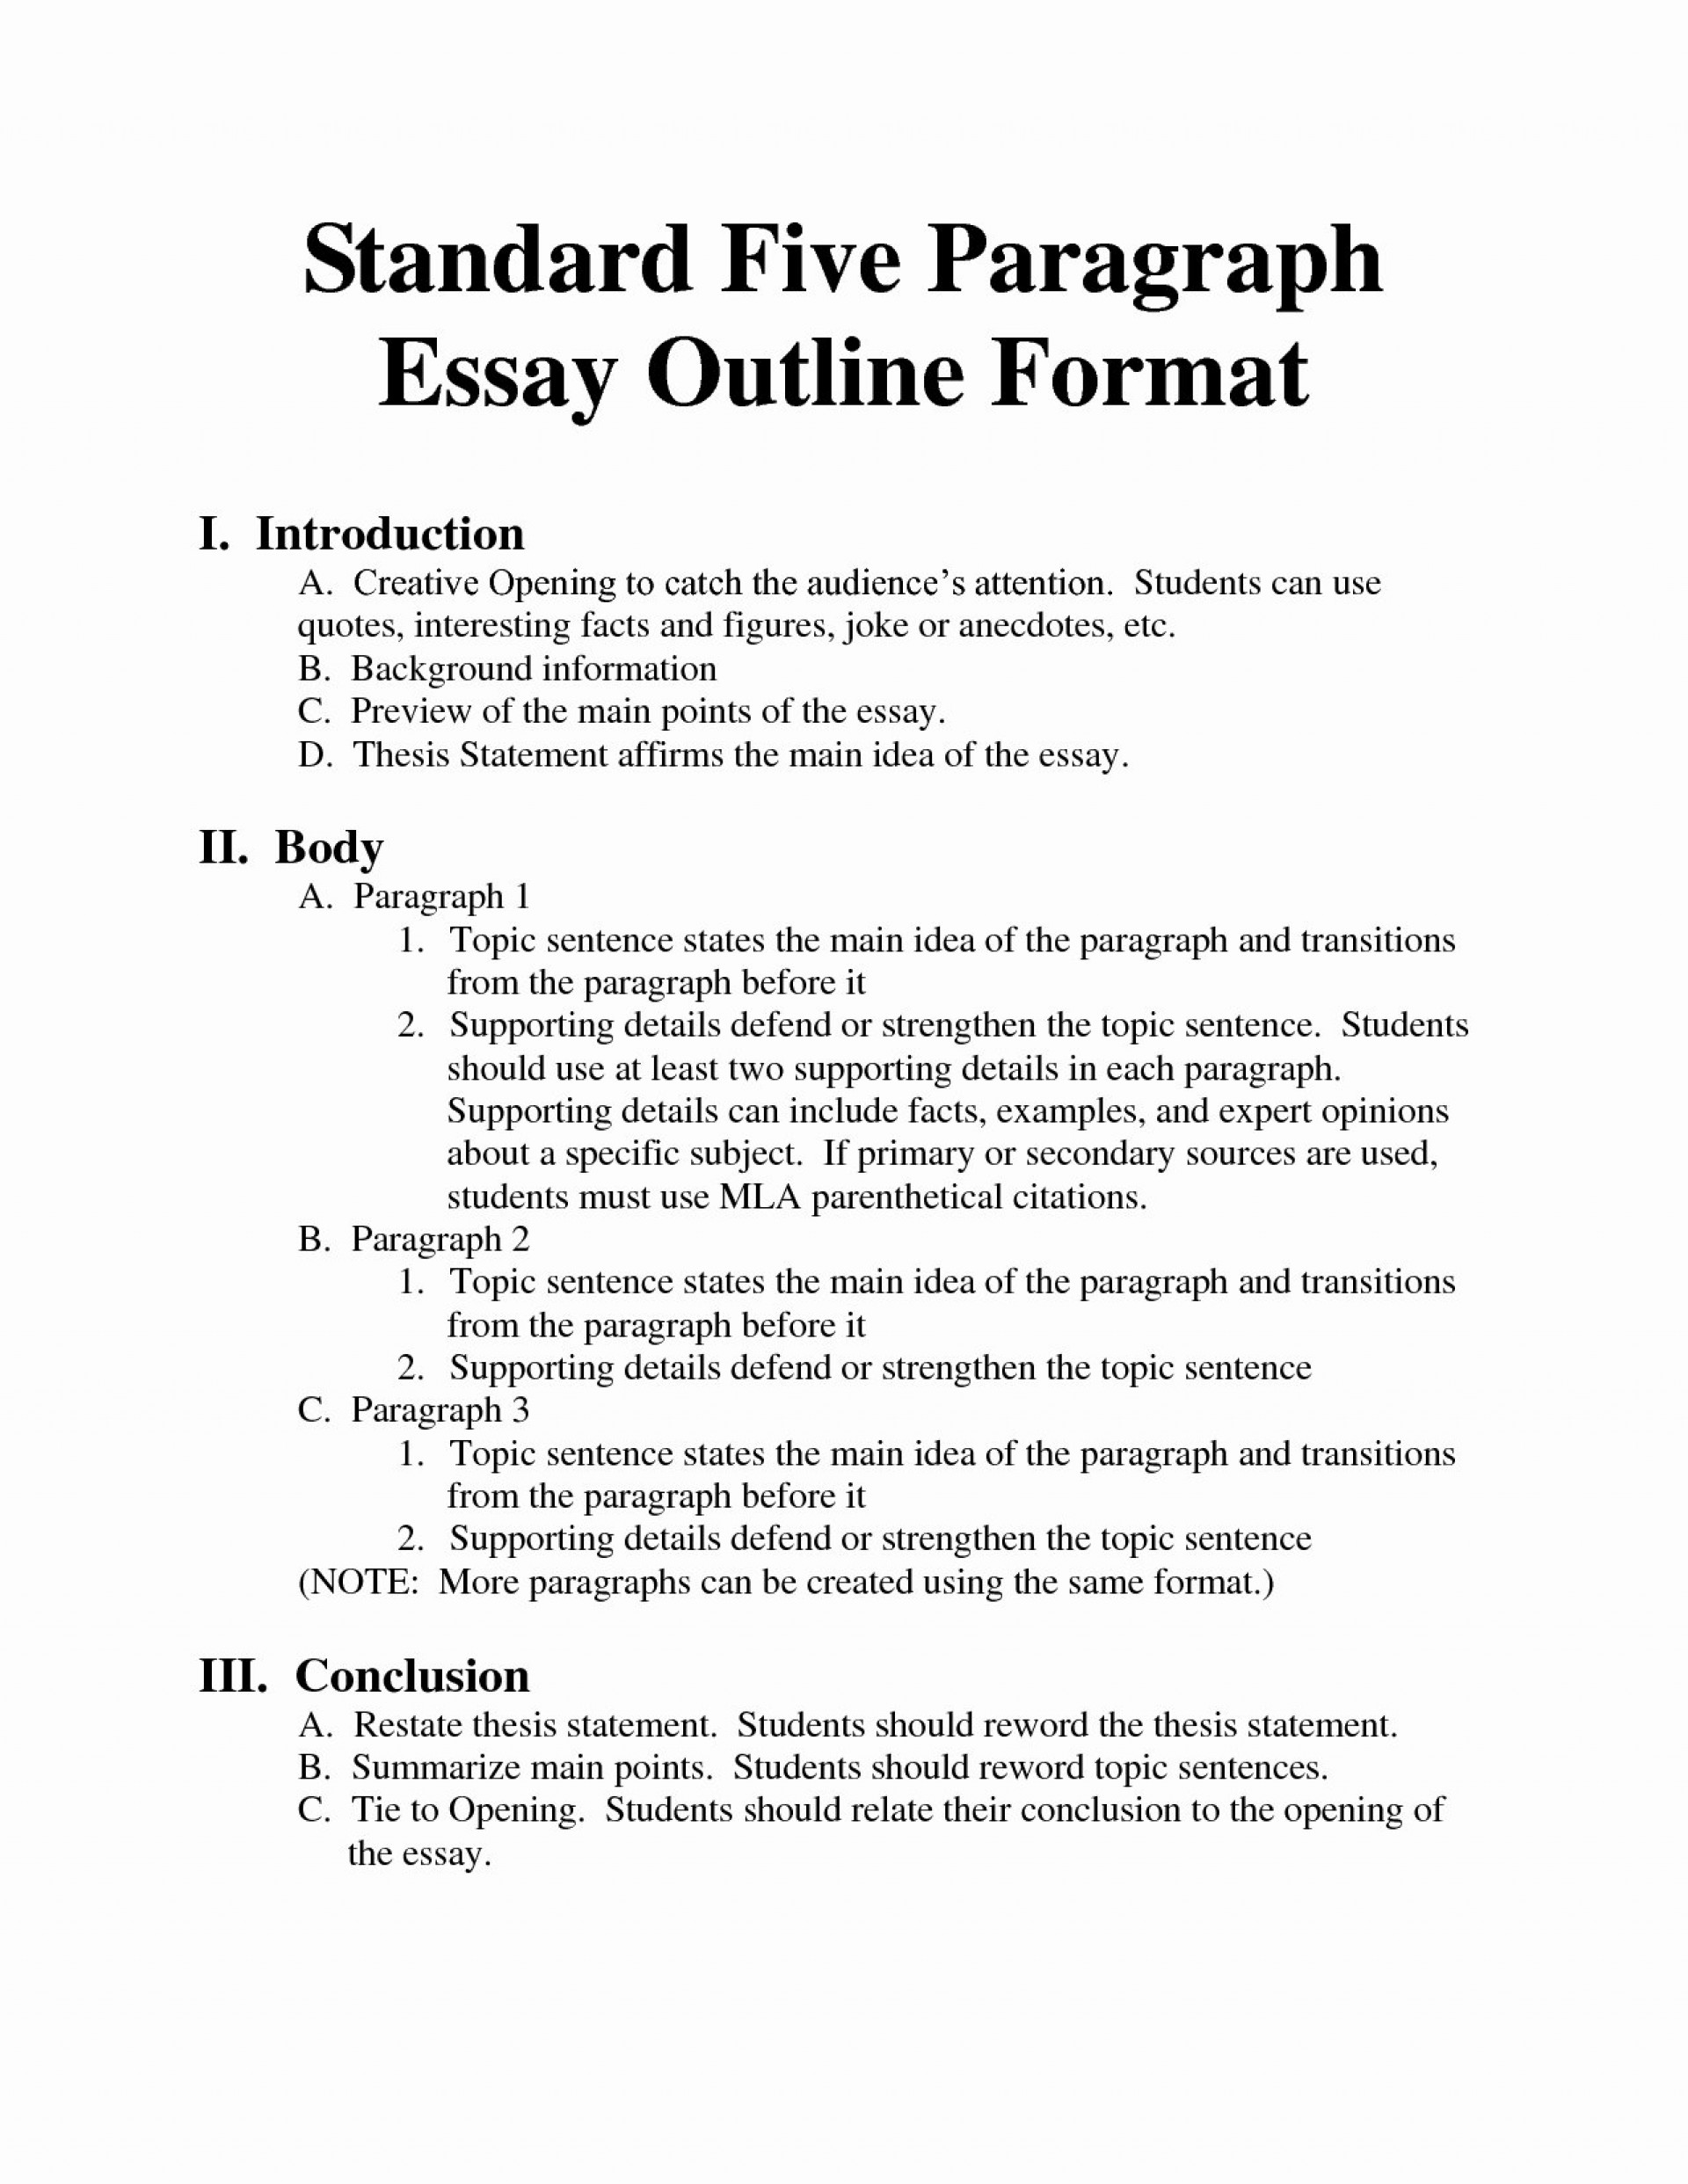 003 Evaluation Essay Outline Example Unique English Format Movie Of Self Film Template Layout Critical Unforgettable Review Paper Source 1920